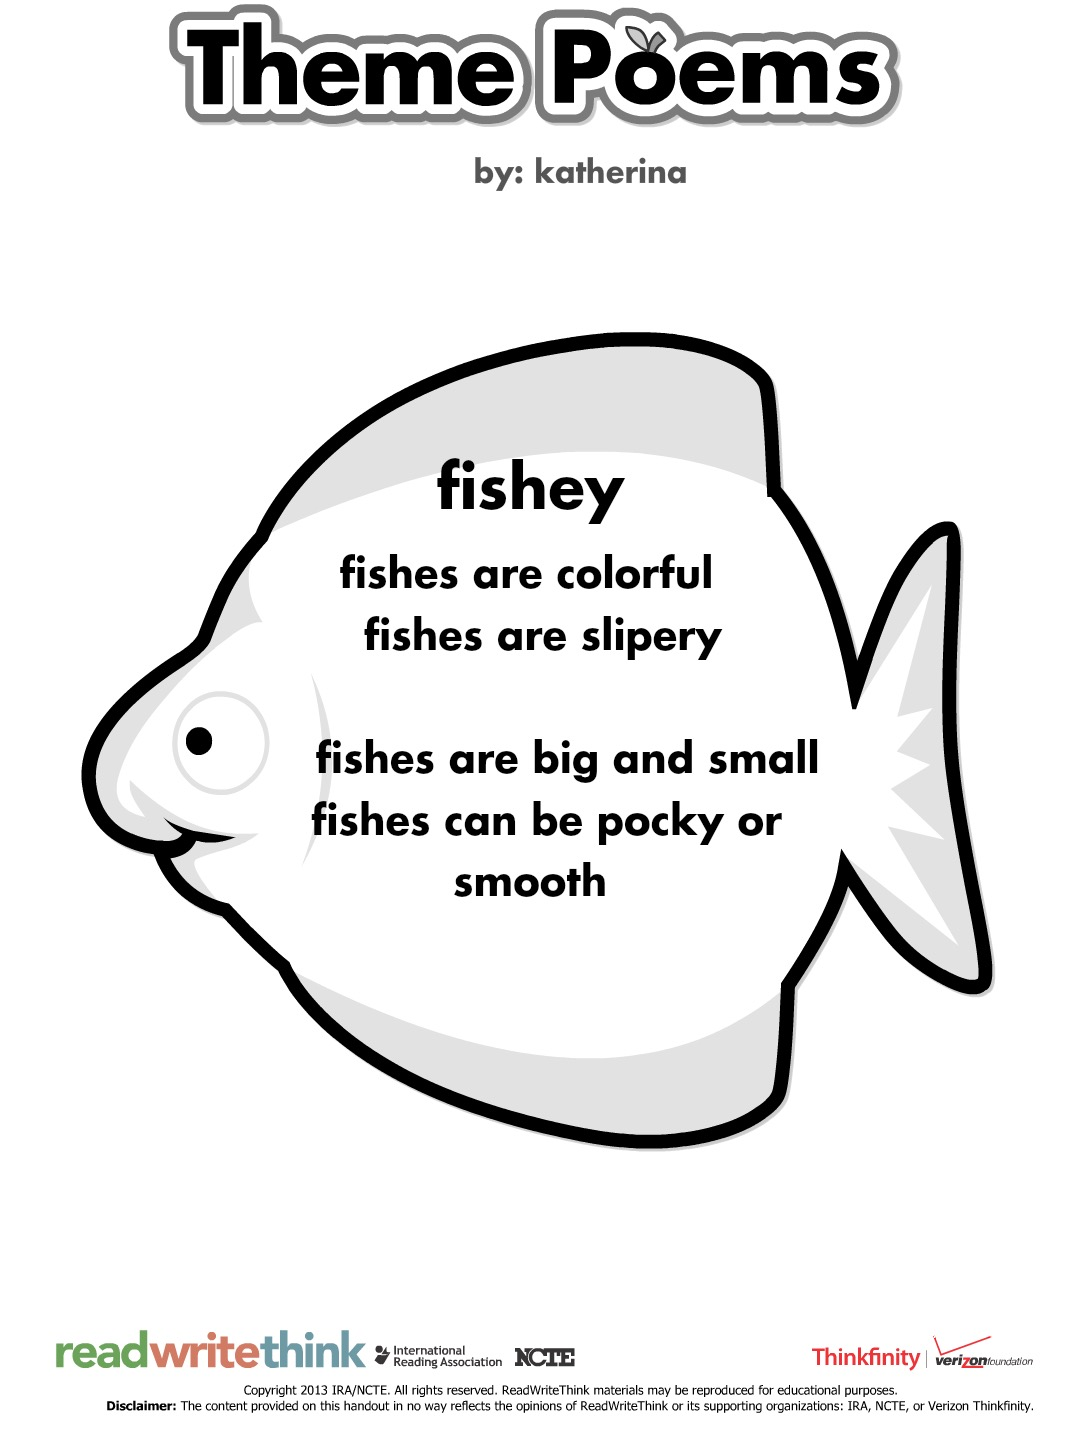 Lessons from a laughing librarian technology tuesday for The fish poem